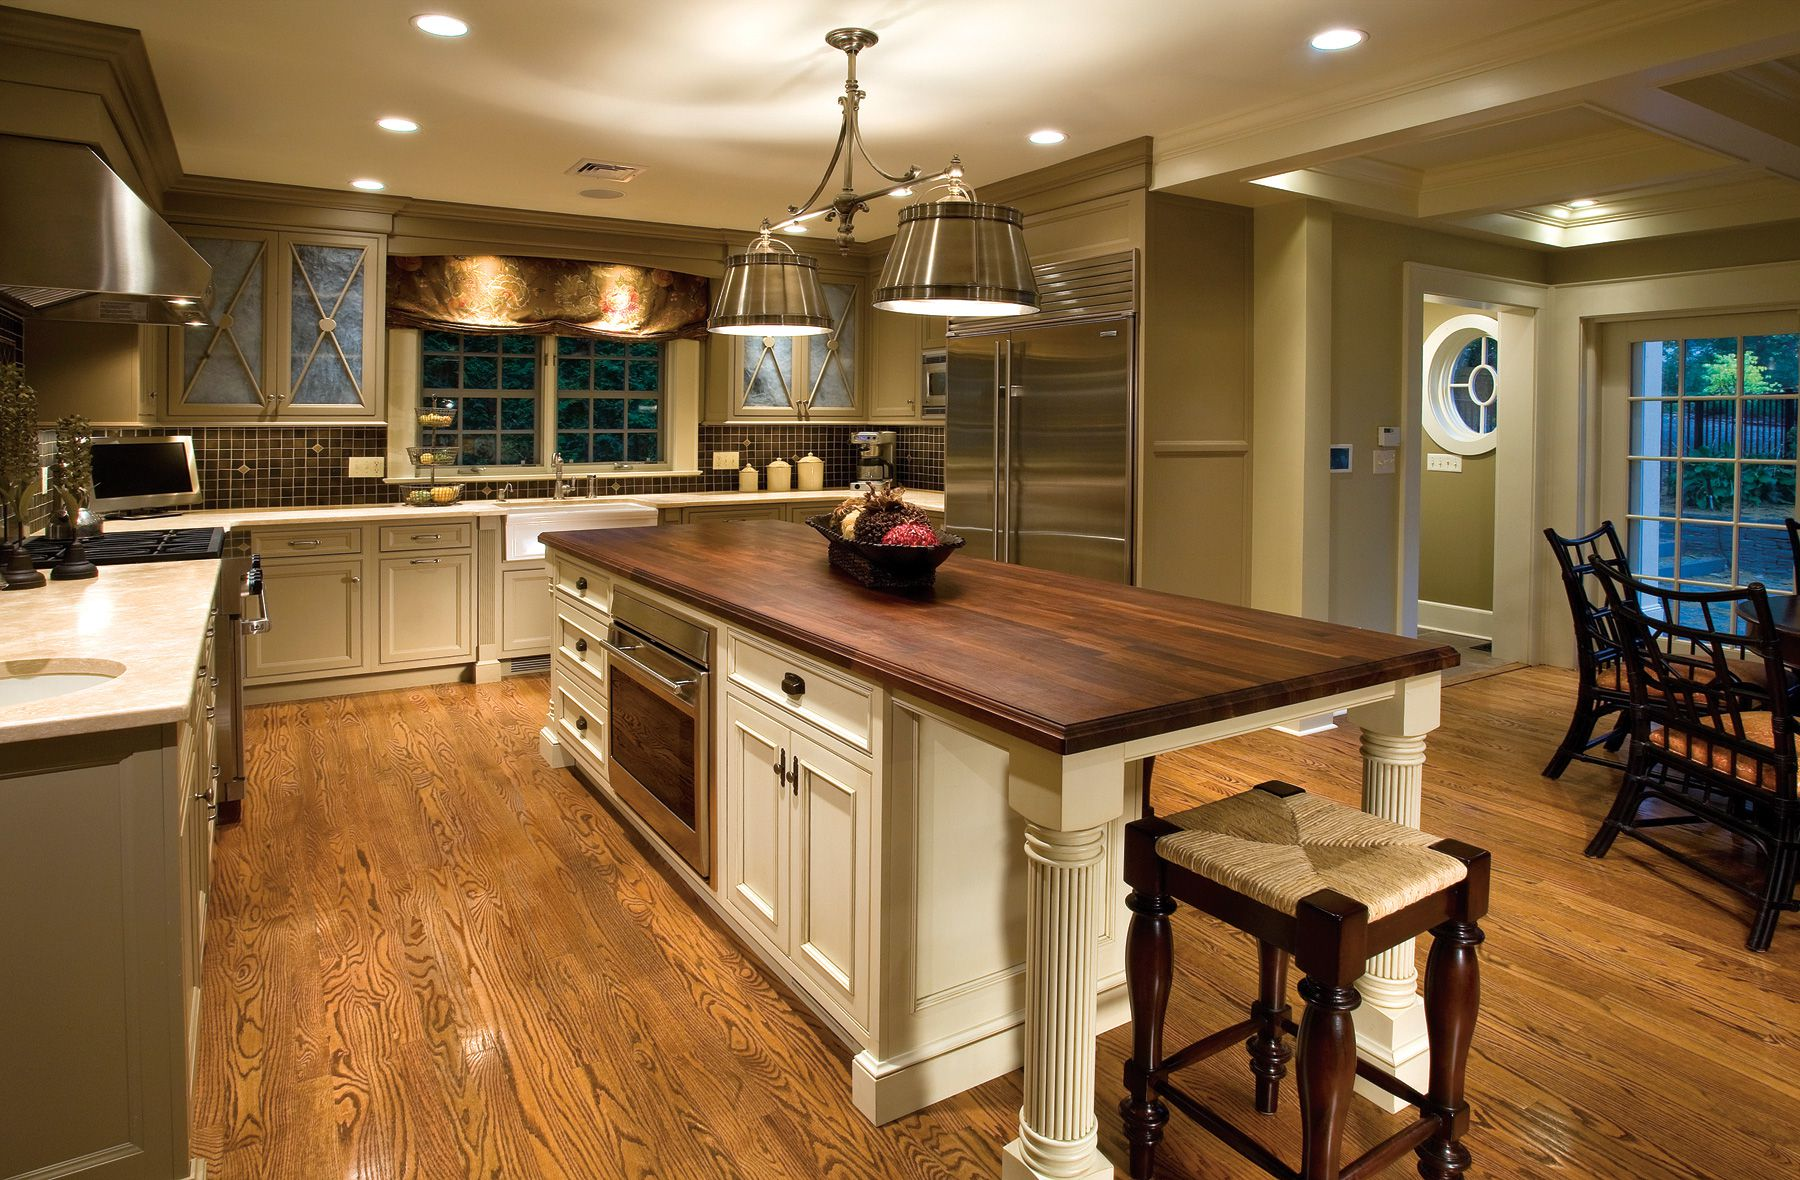 Terrific Rustic Kitchen Ideas Of Entrancing Design Of Featuring S M L Acnn Decor